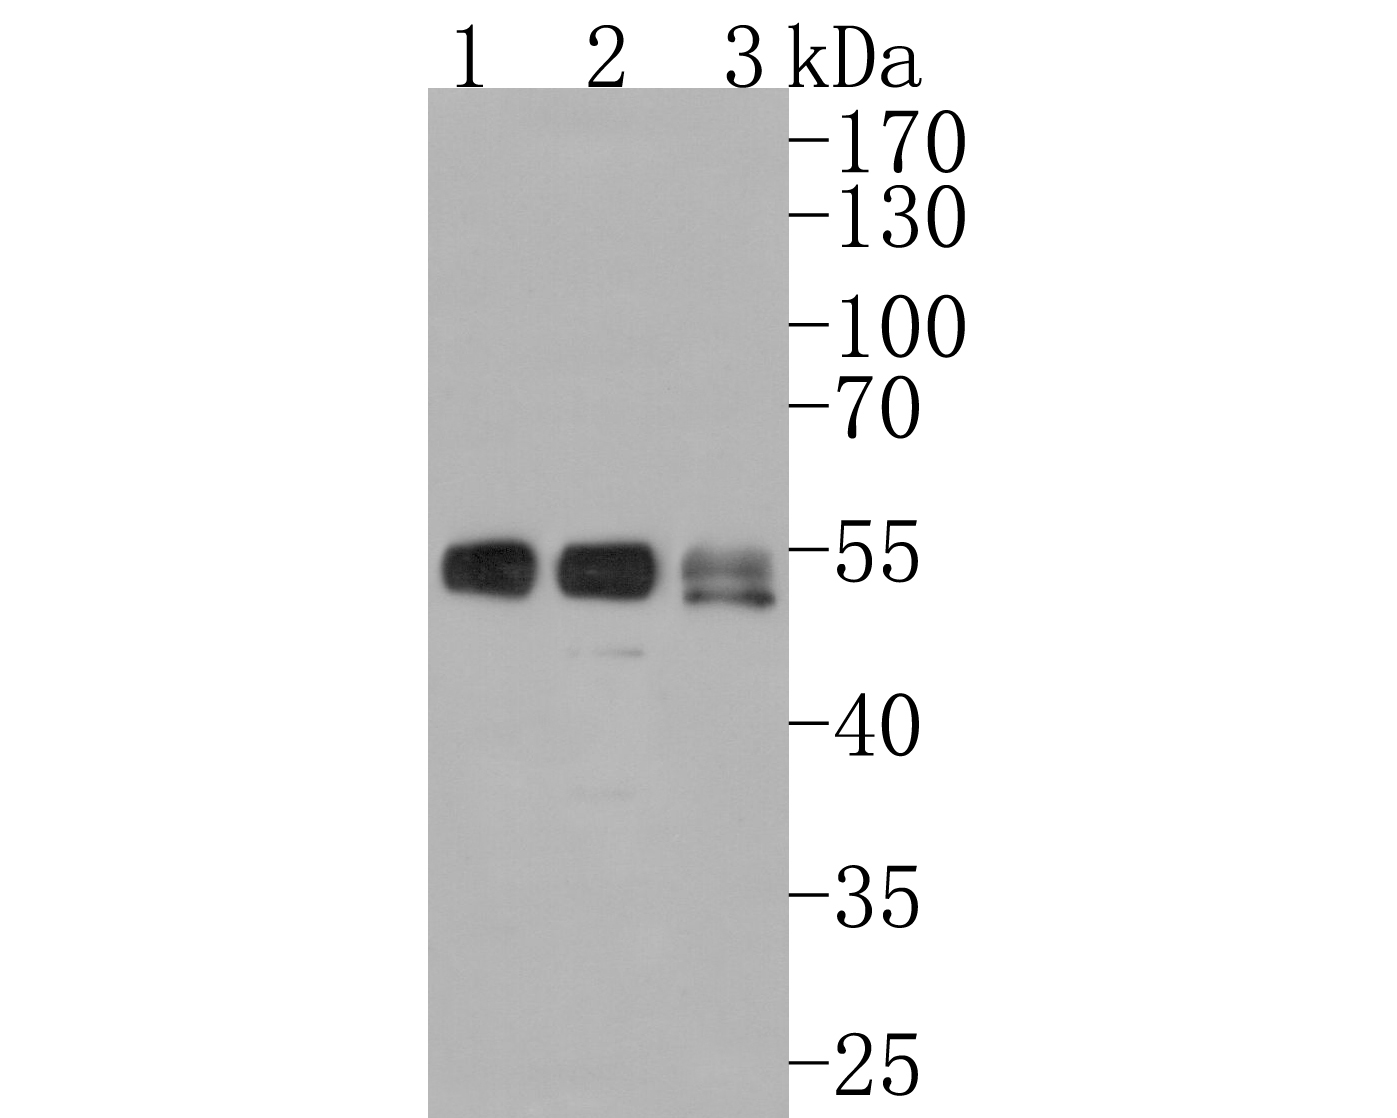 Western blot analysis of Lumican on different lysates using anti-Lumican antibody at 1/1,000 dilution. <br />  Positive control: <br />  Lane 1: Jurkat  <br />           Lane 2: 293T <br />  Lane 3: Human skin